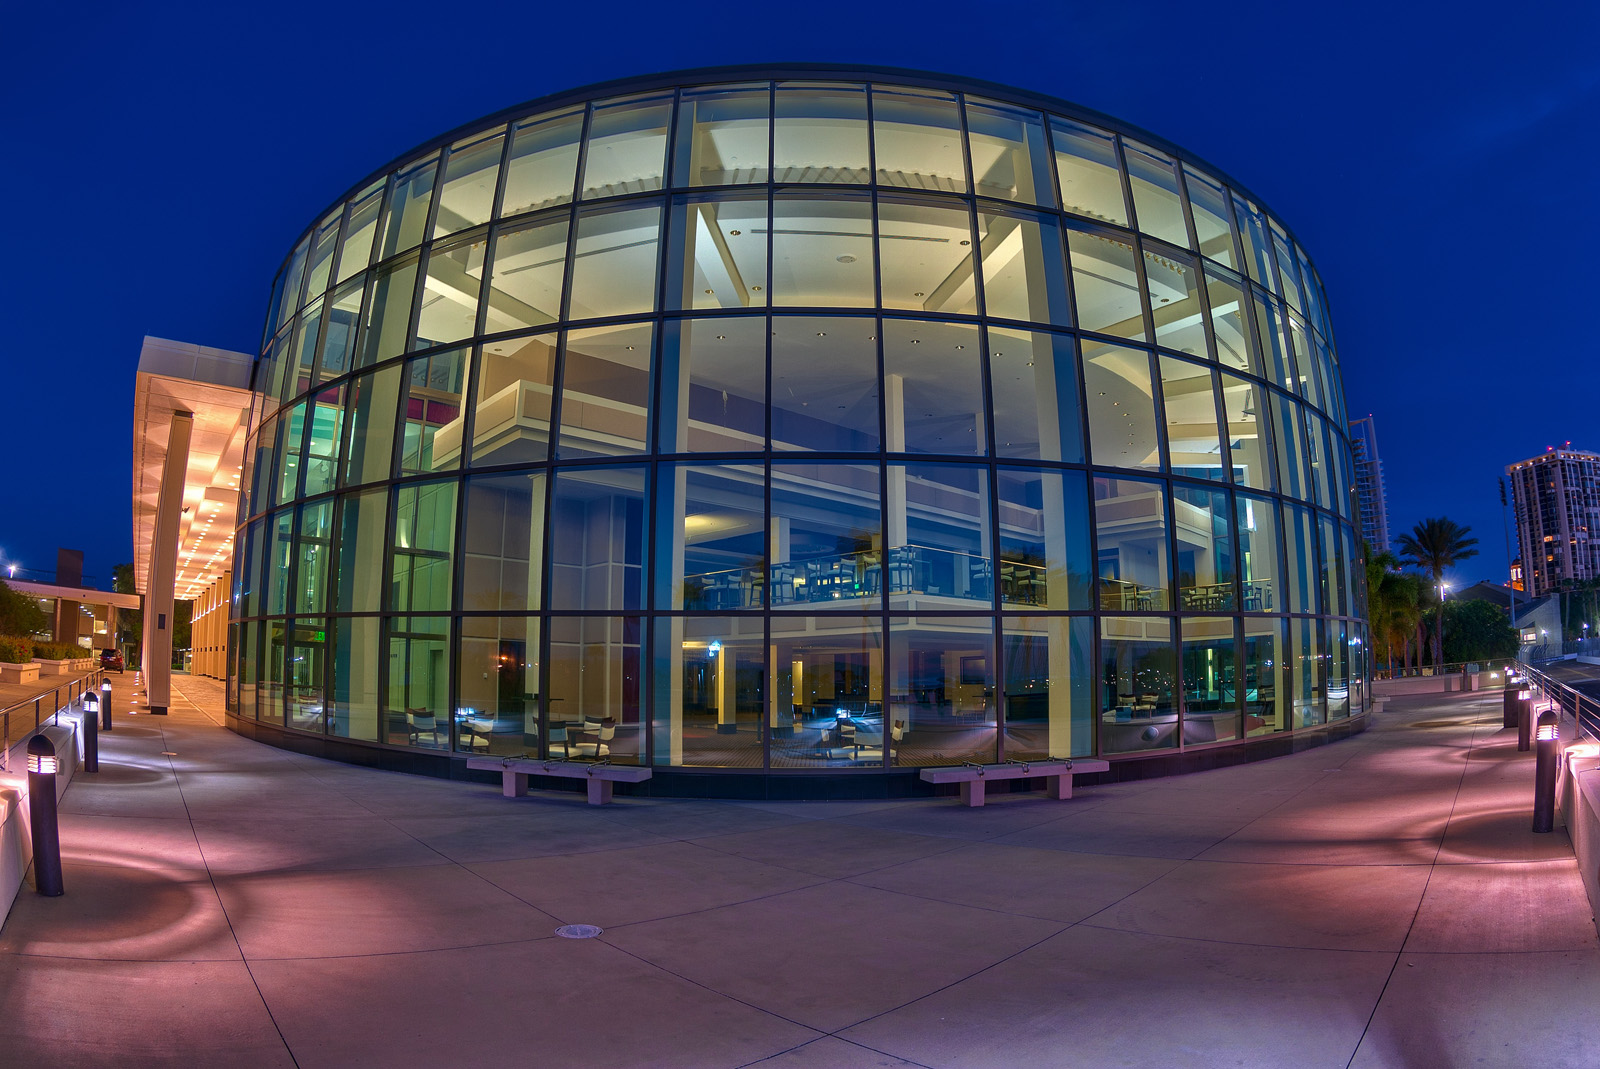 Mahaffey Theater Fisheye